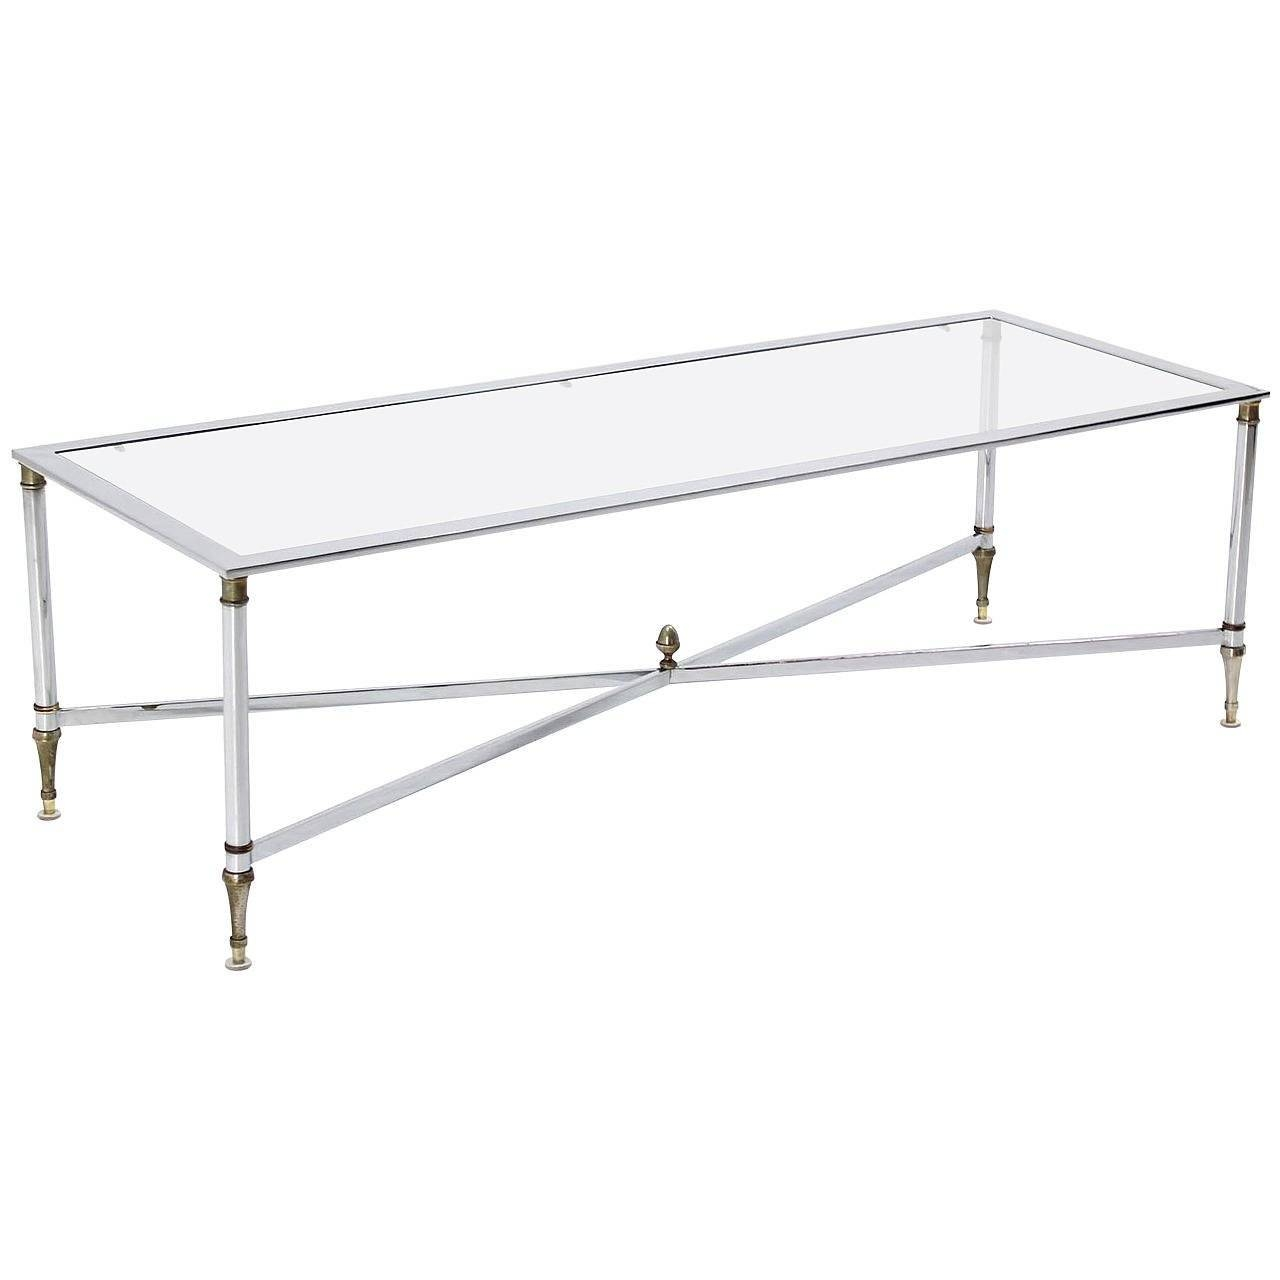 Chrome Brass X Base Glass Top Long Rectangle Coffee Table For Sale inside Rectangle Glass Coffee Table (Image 4 of 15)